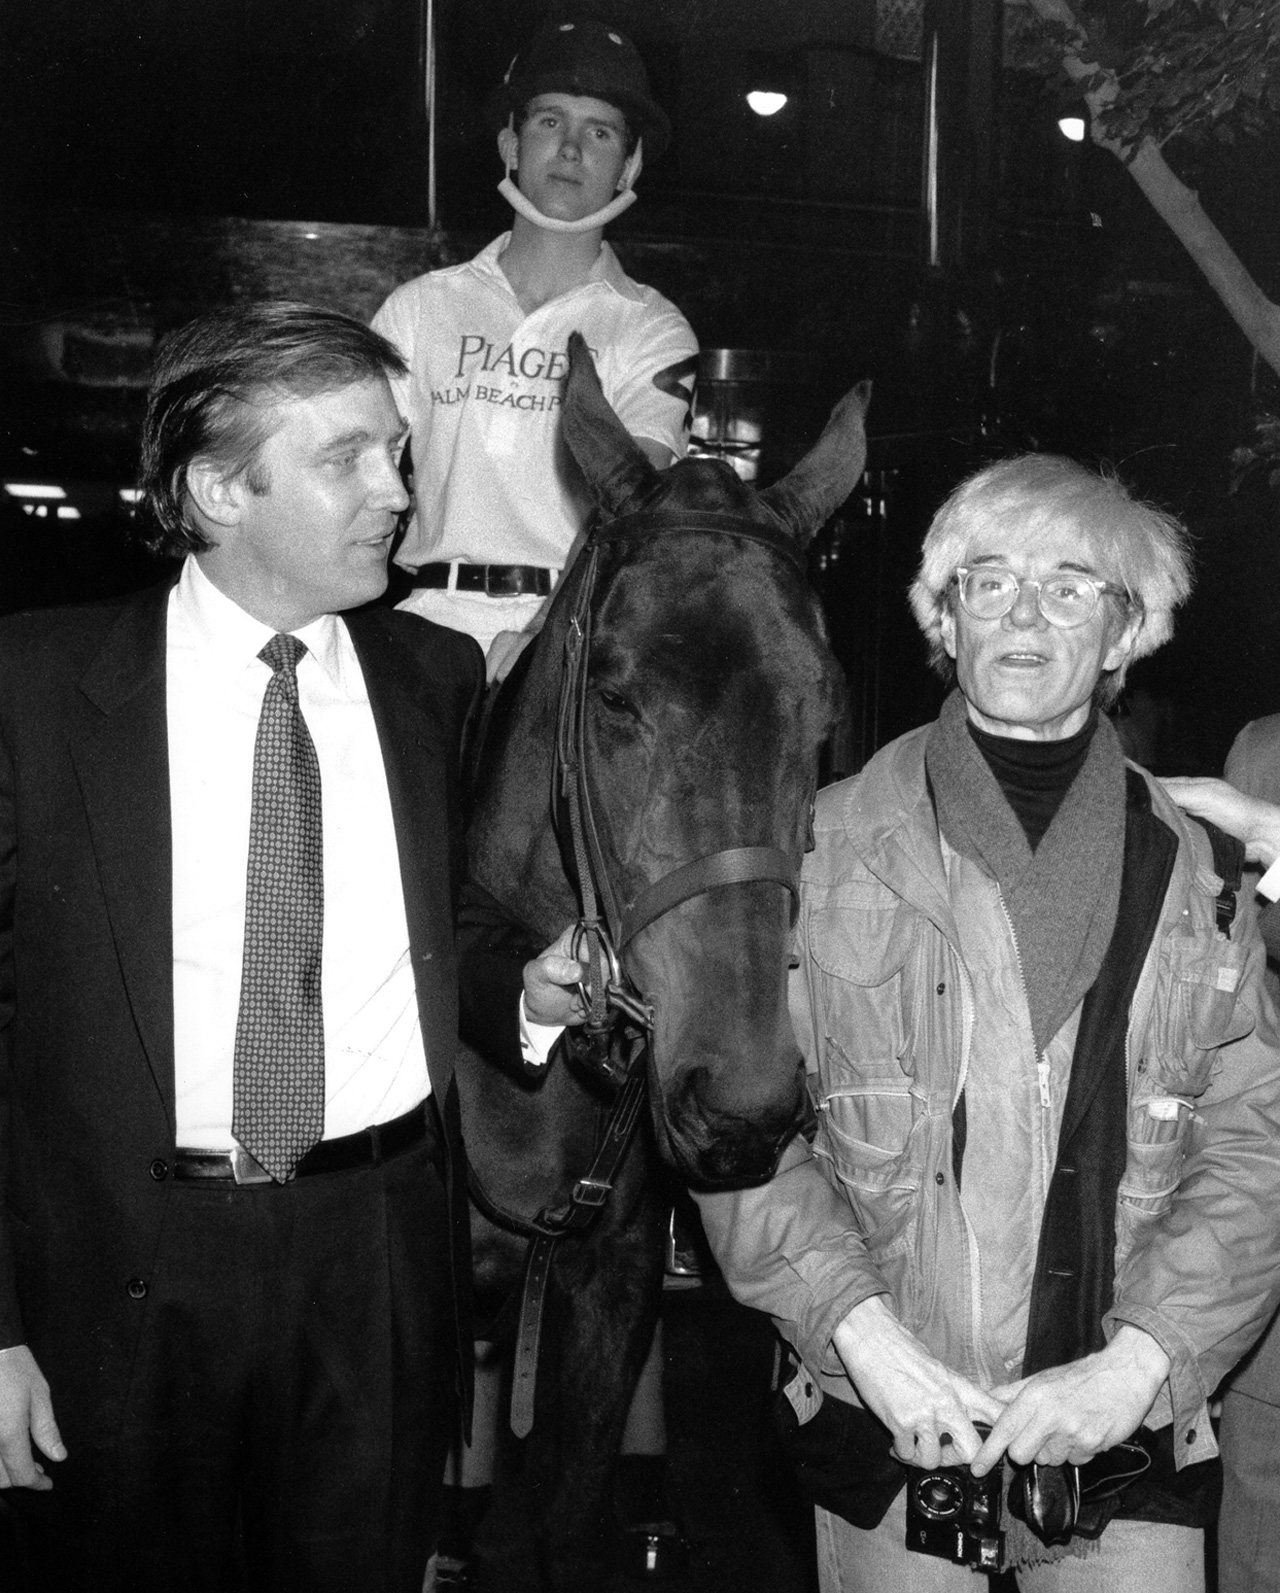 Donald Trump with Andy Warhol and polo pony - image by Mario Suriani